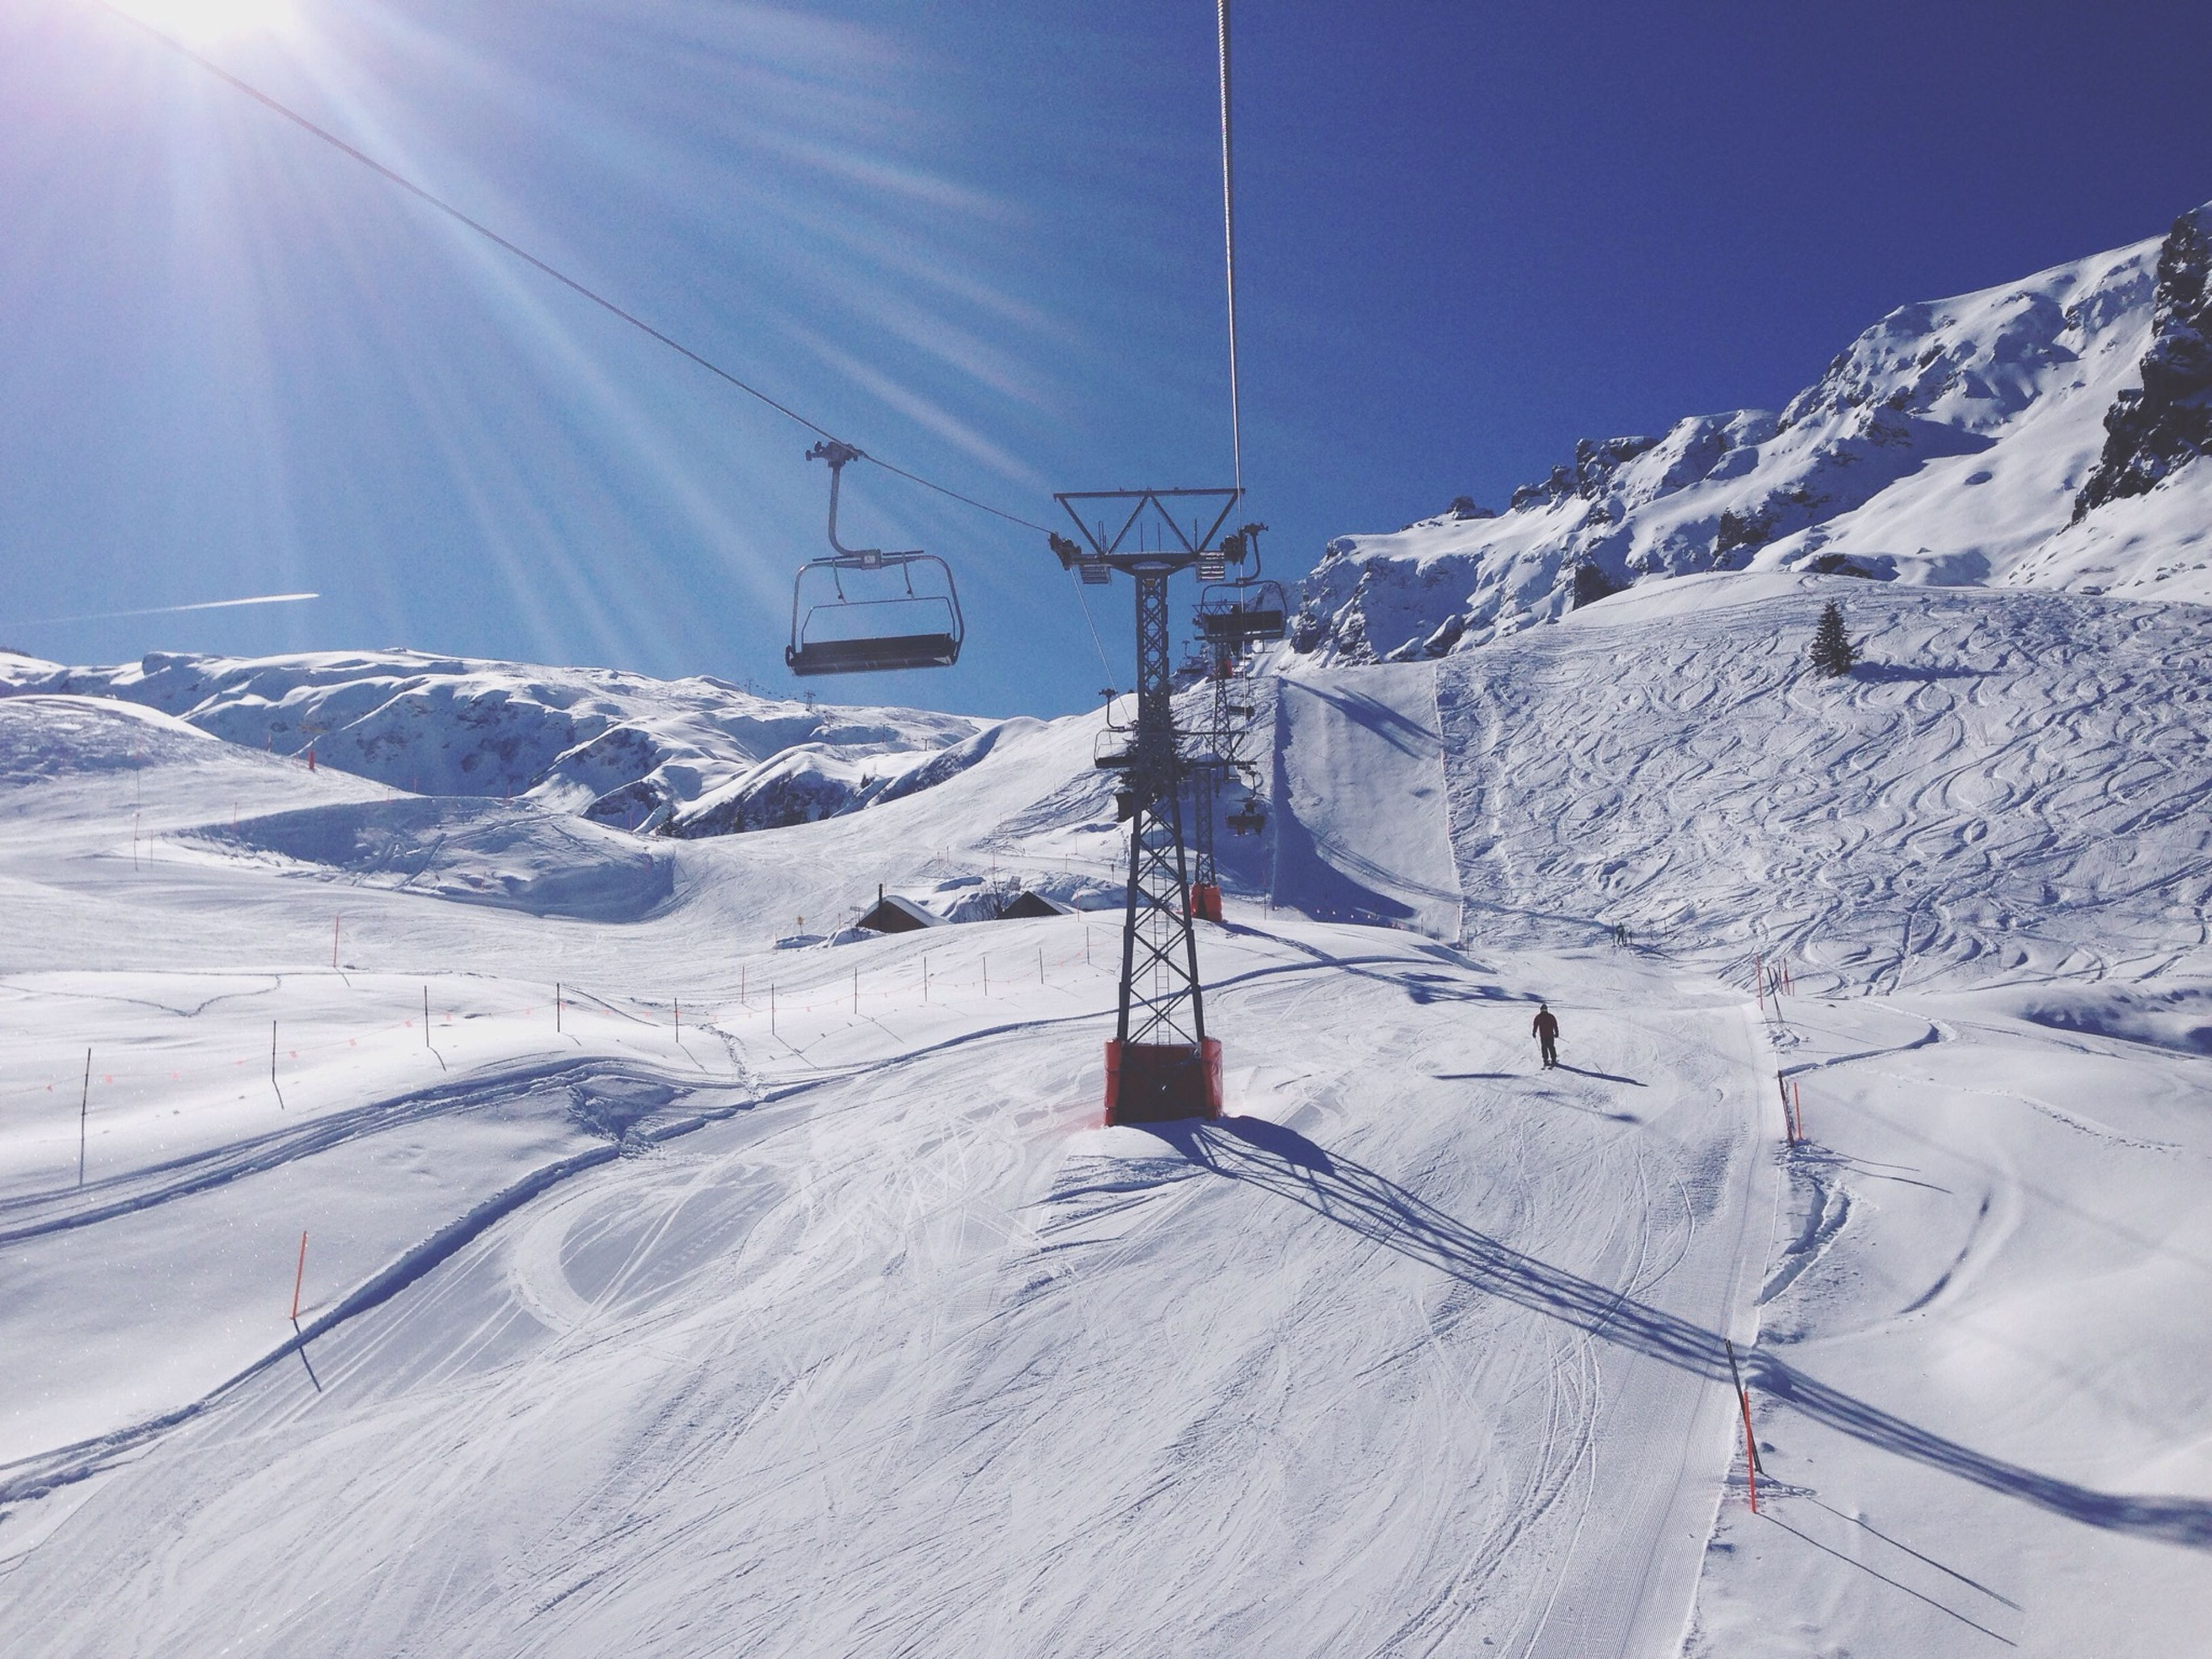 snow, cold temperature, winter, season, mountain, weather, landscape, tranquility, tranquil scene, covering, snowcapped mountain, sunlight, beauty in nature, scenics, sun, nature, white color, mountain range, ski lift, snow covered